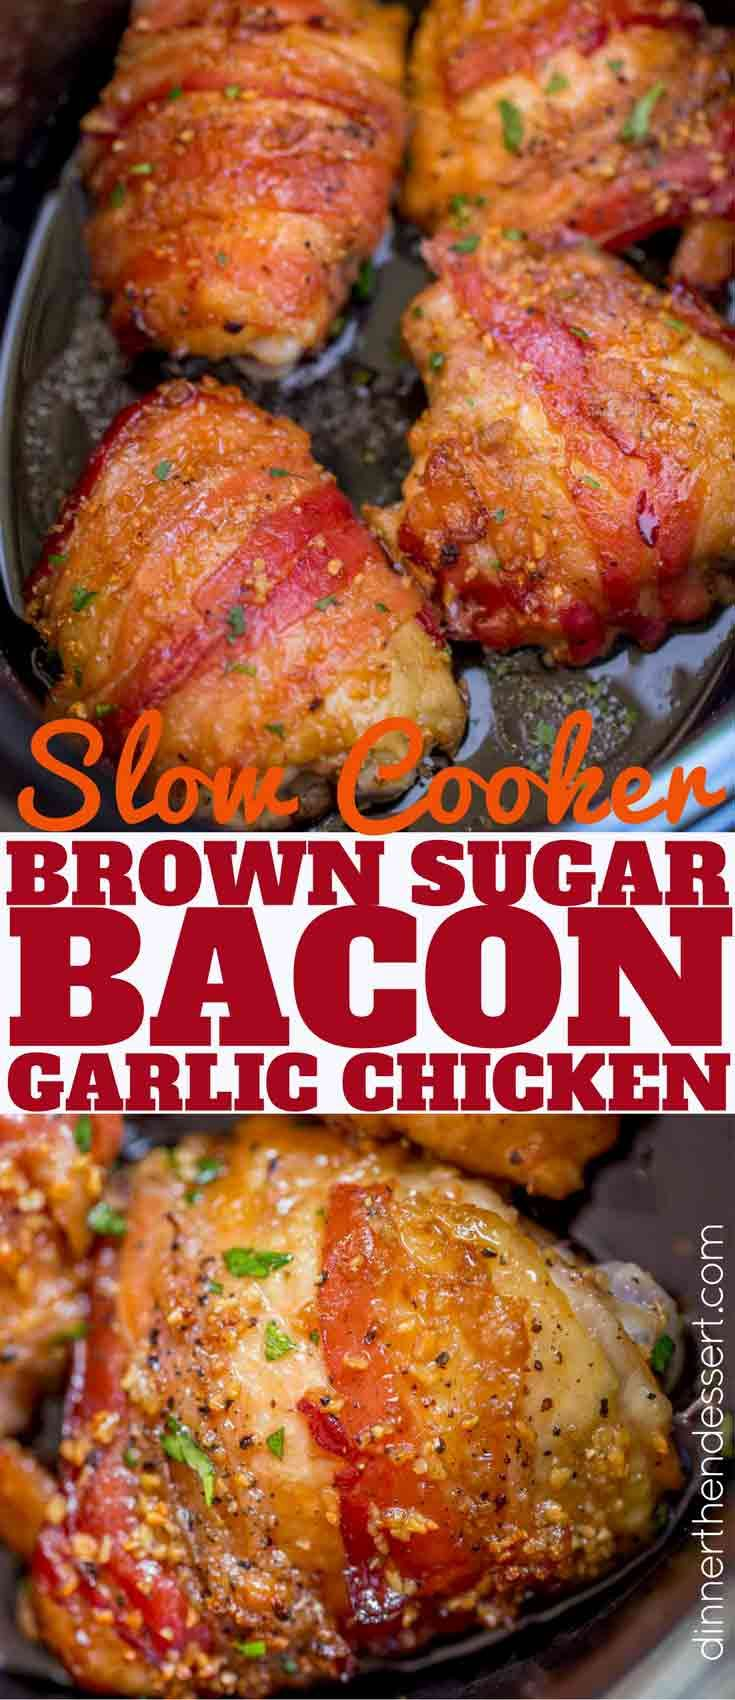 Slow Cooker Bacon Brown Sugar Garlic Chicken is made with just five ingredients in your slow cooker